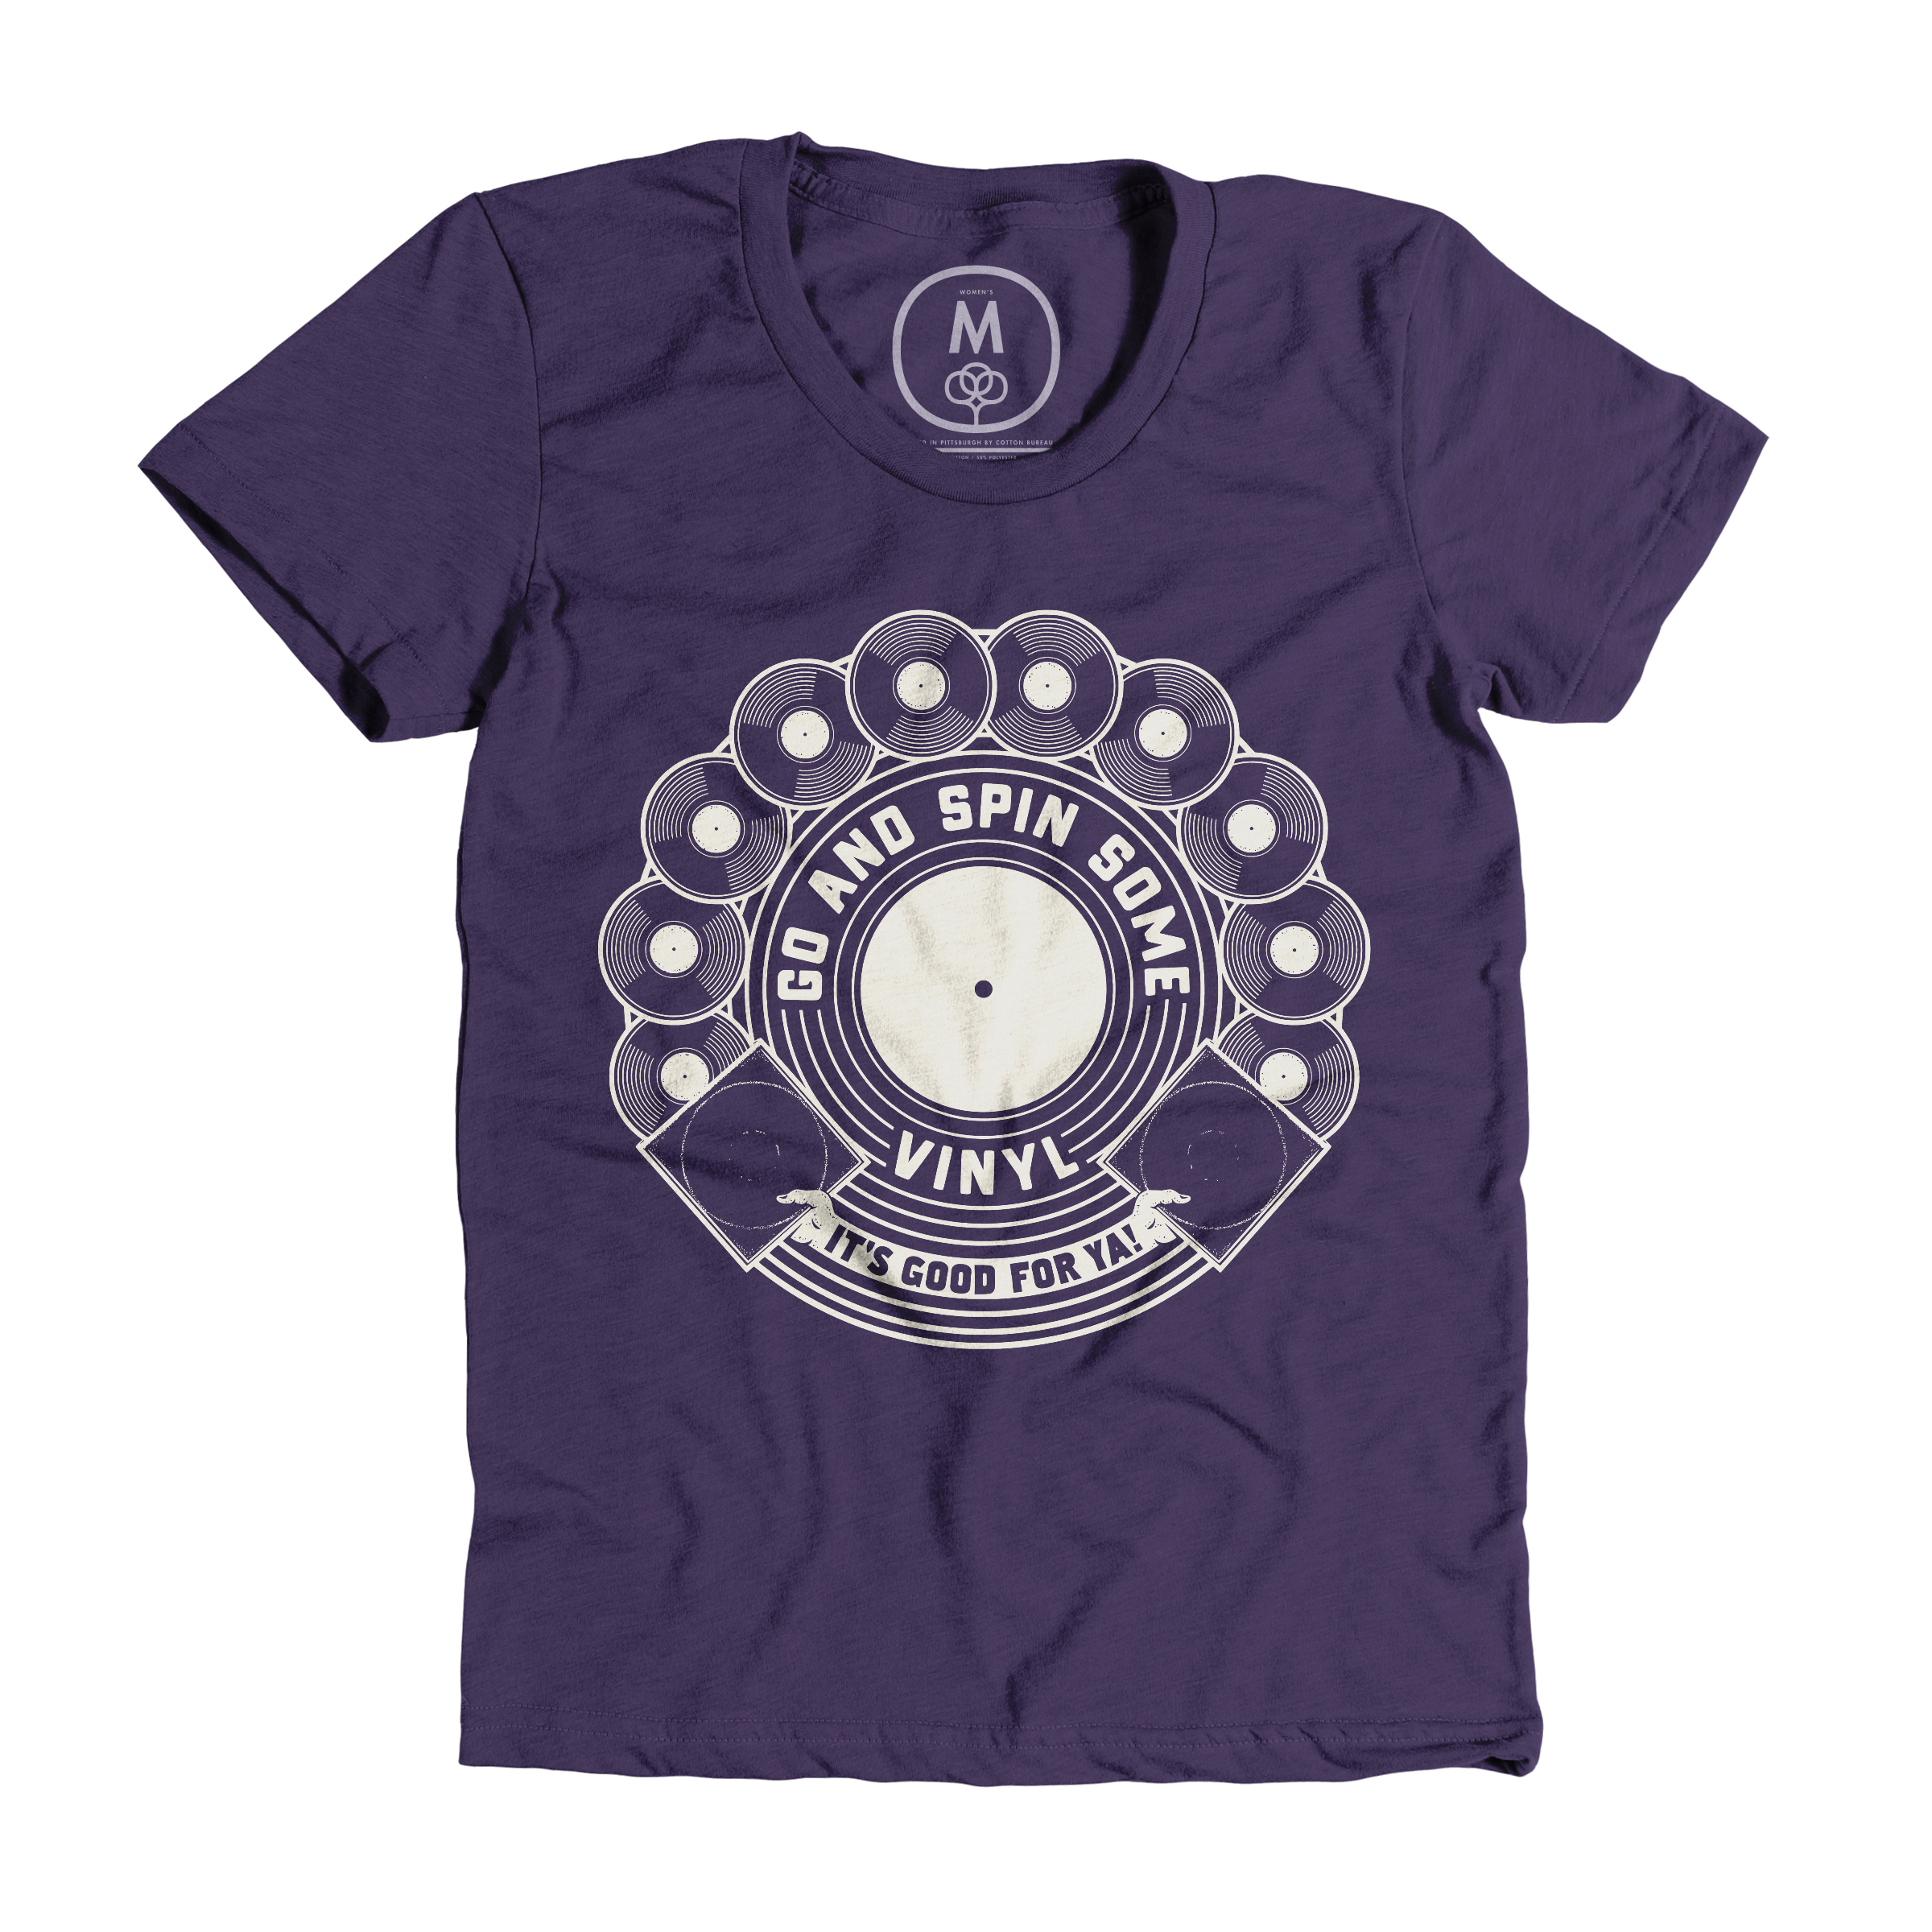 Vinyl's Good For Ya! Storm (Women's)